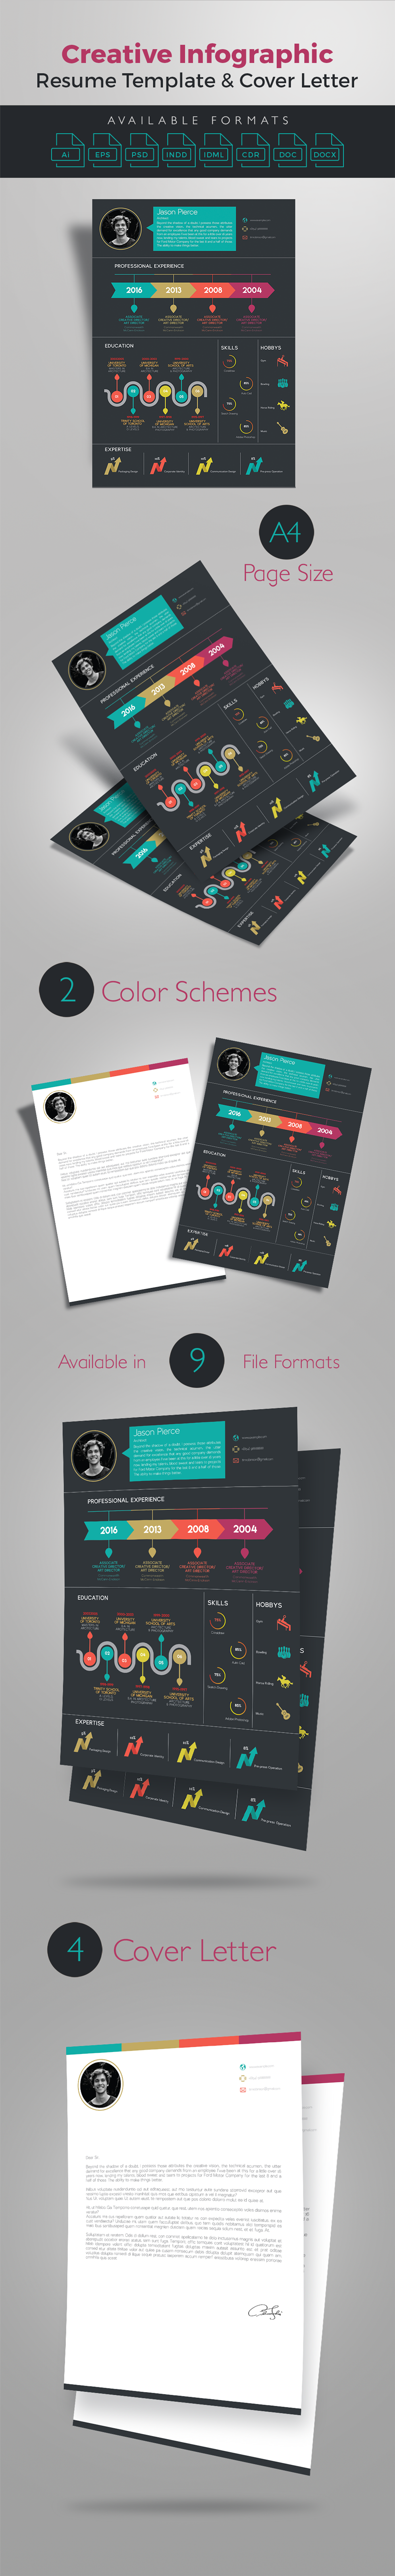 Creative Infographic Resume Template With Cover Letter  Premium Resumes